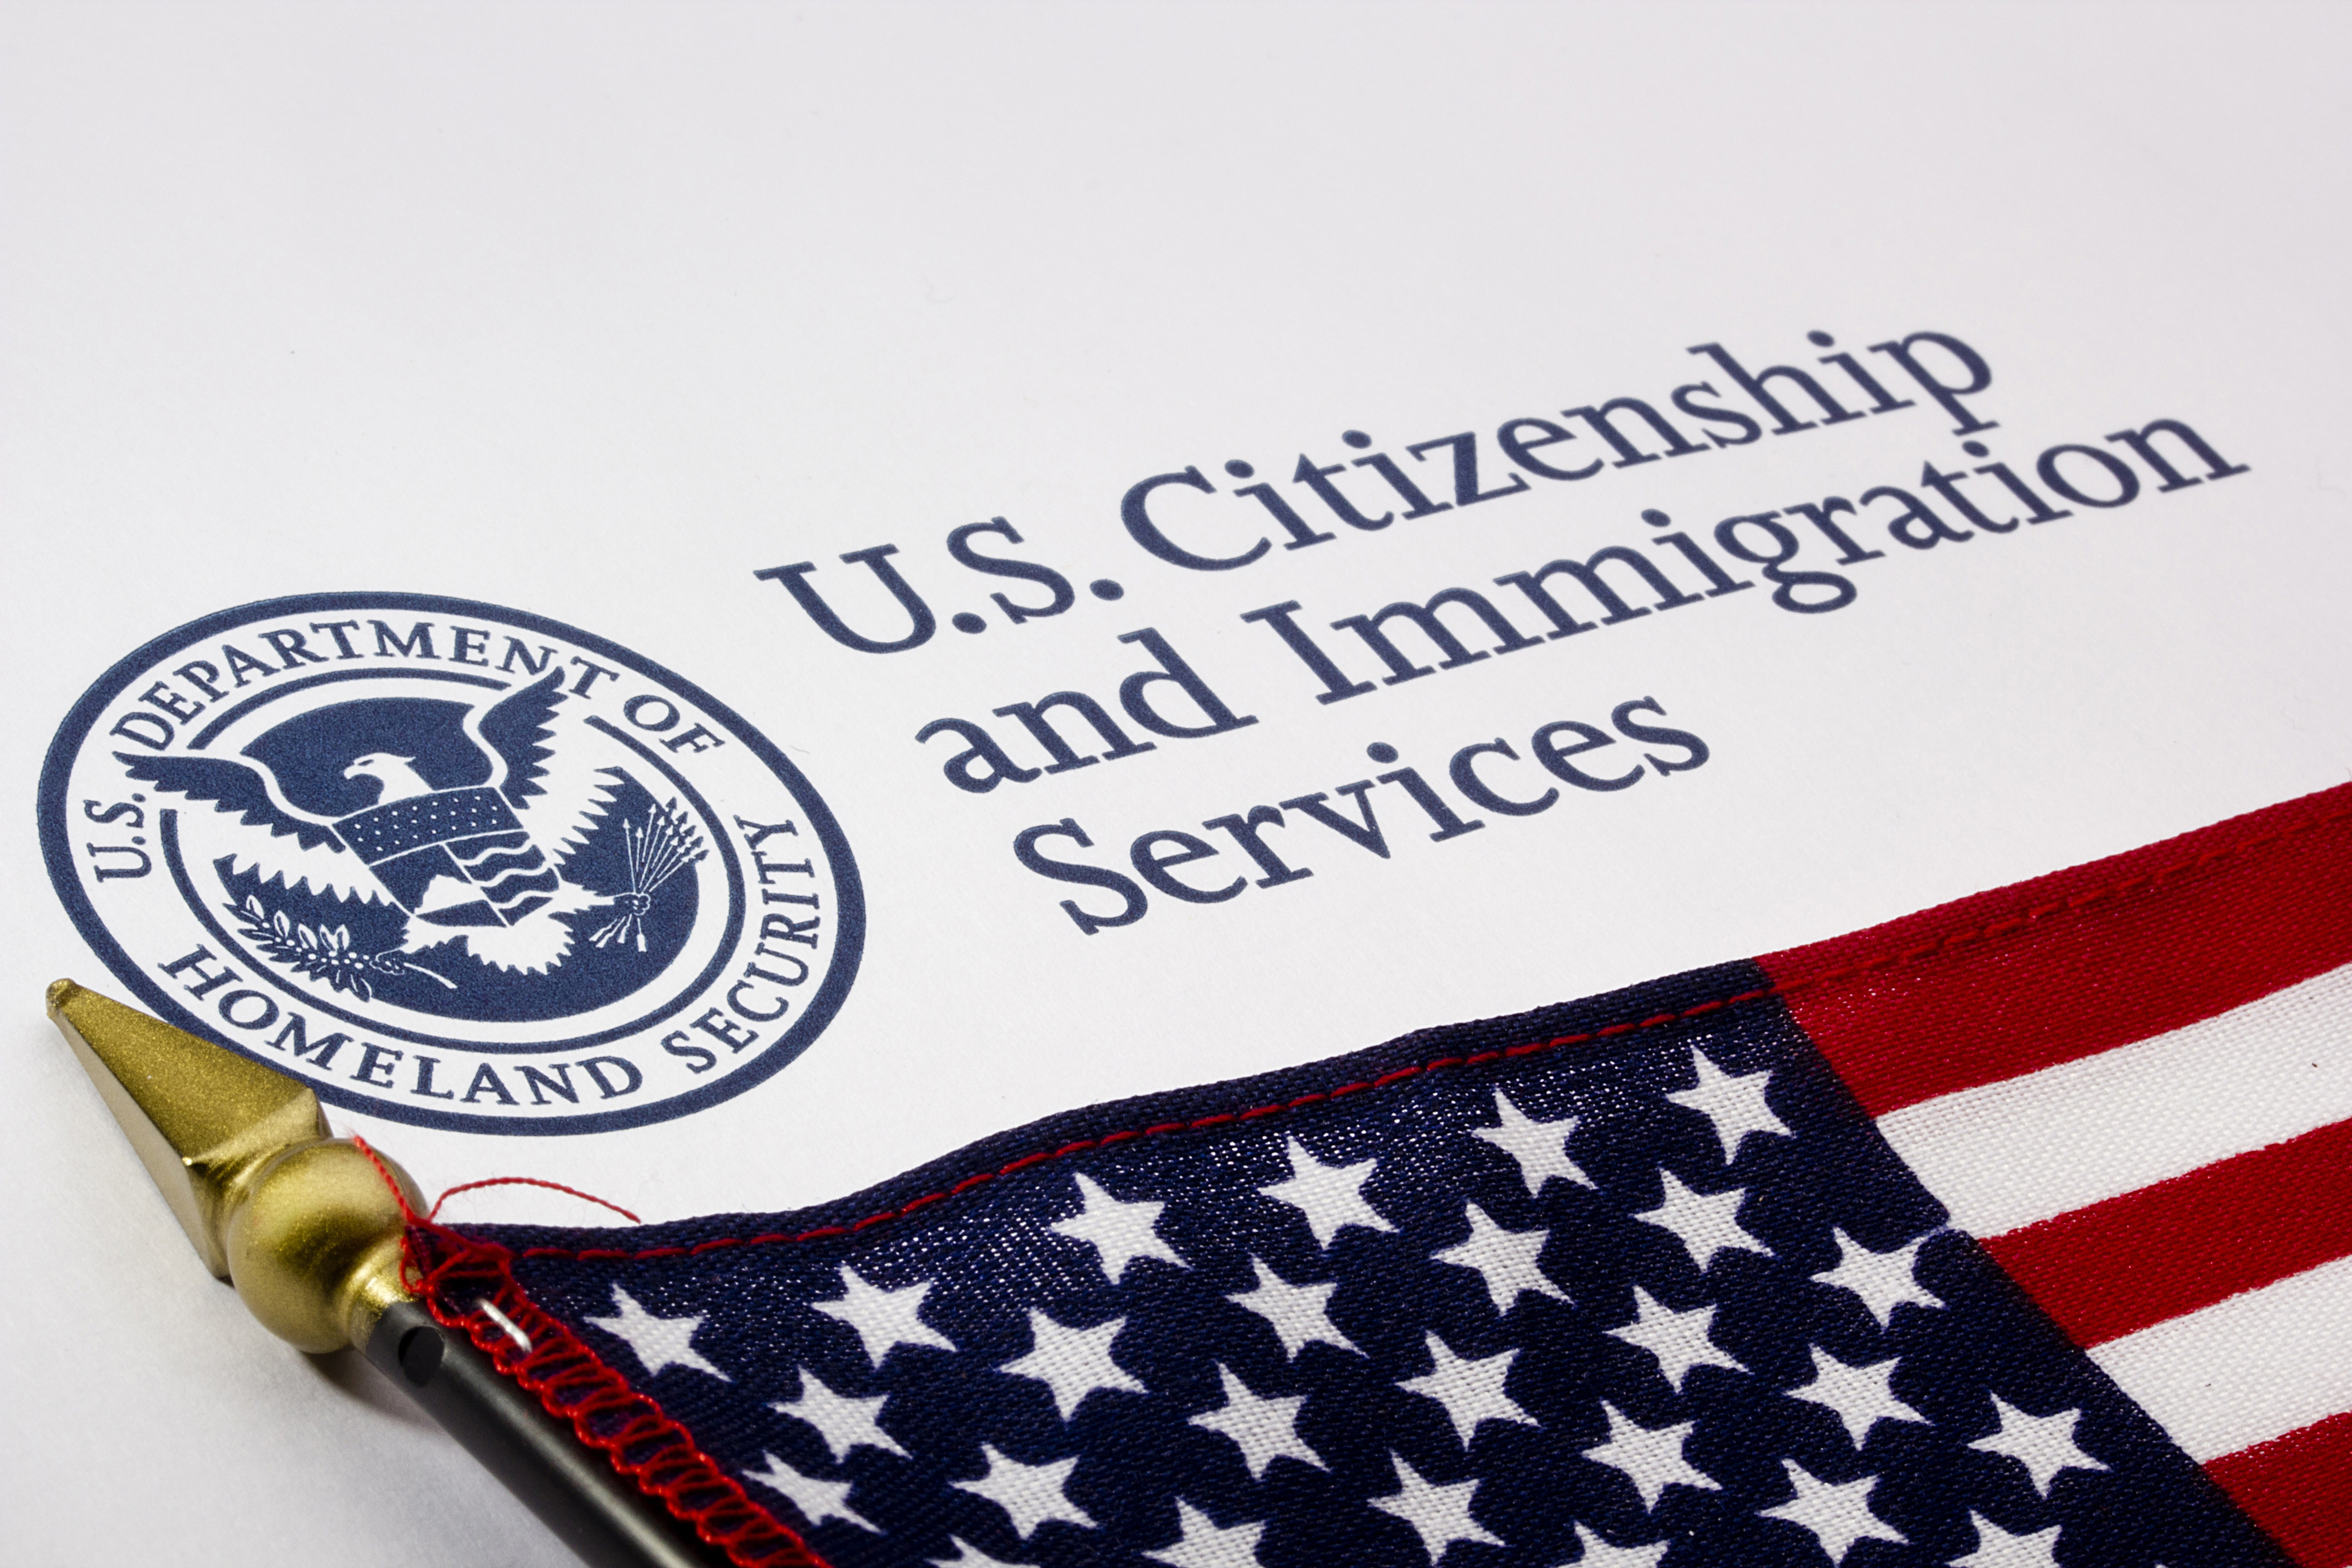 U.S. Citizenship and Immigration Services form next to an American flag